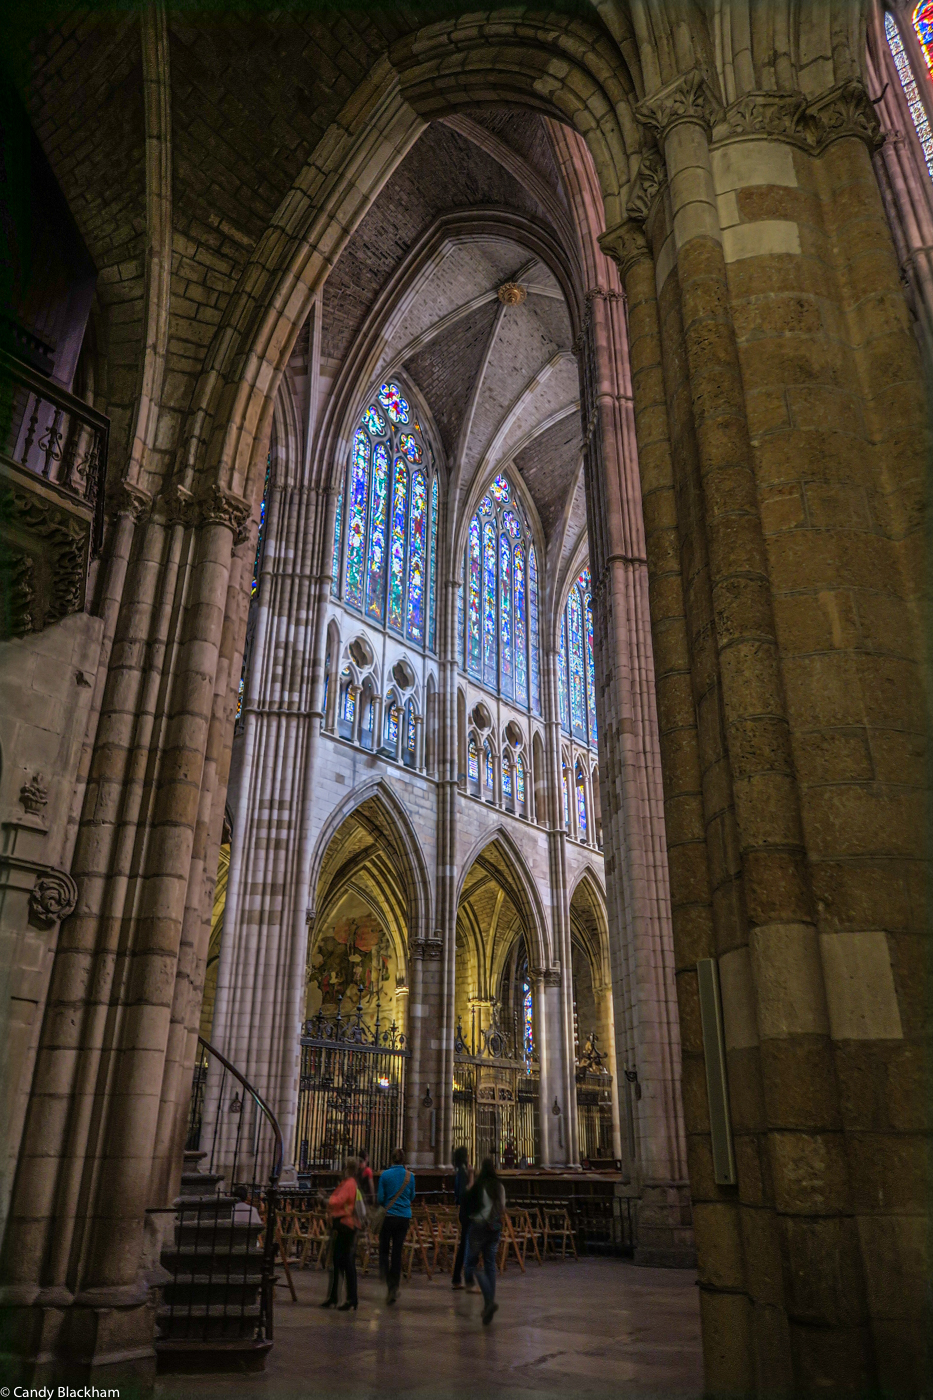 The stained glass windows from the transcept